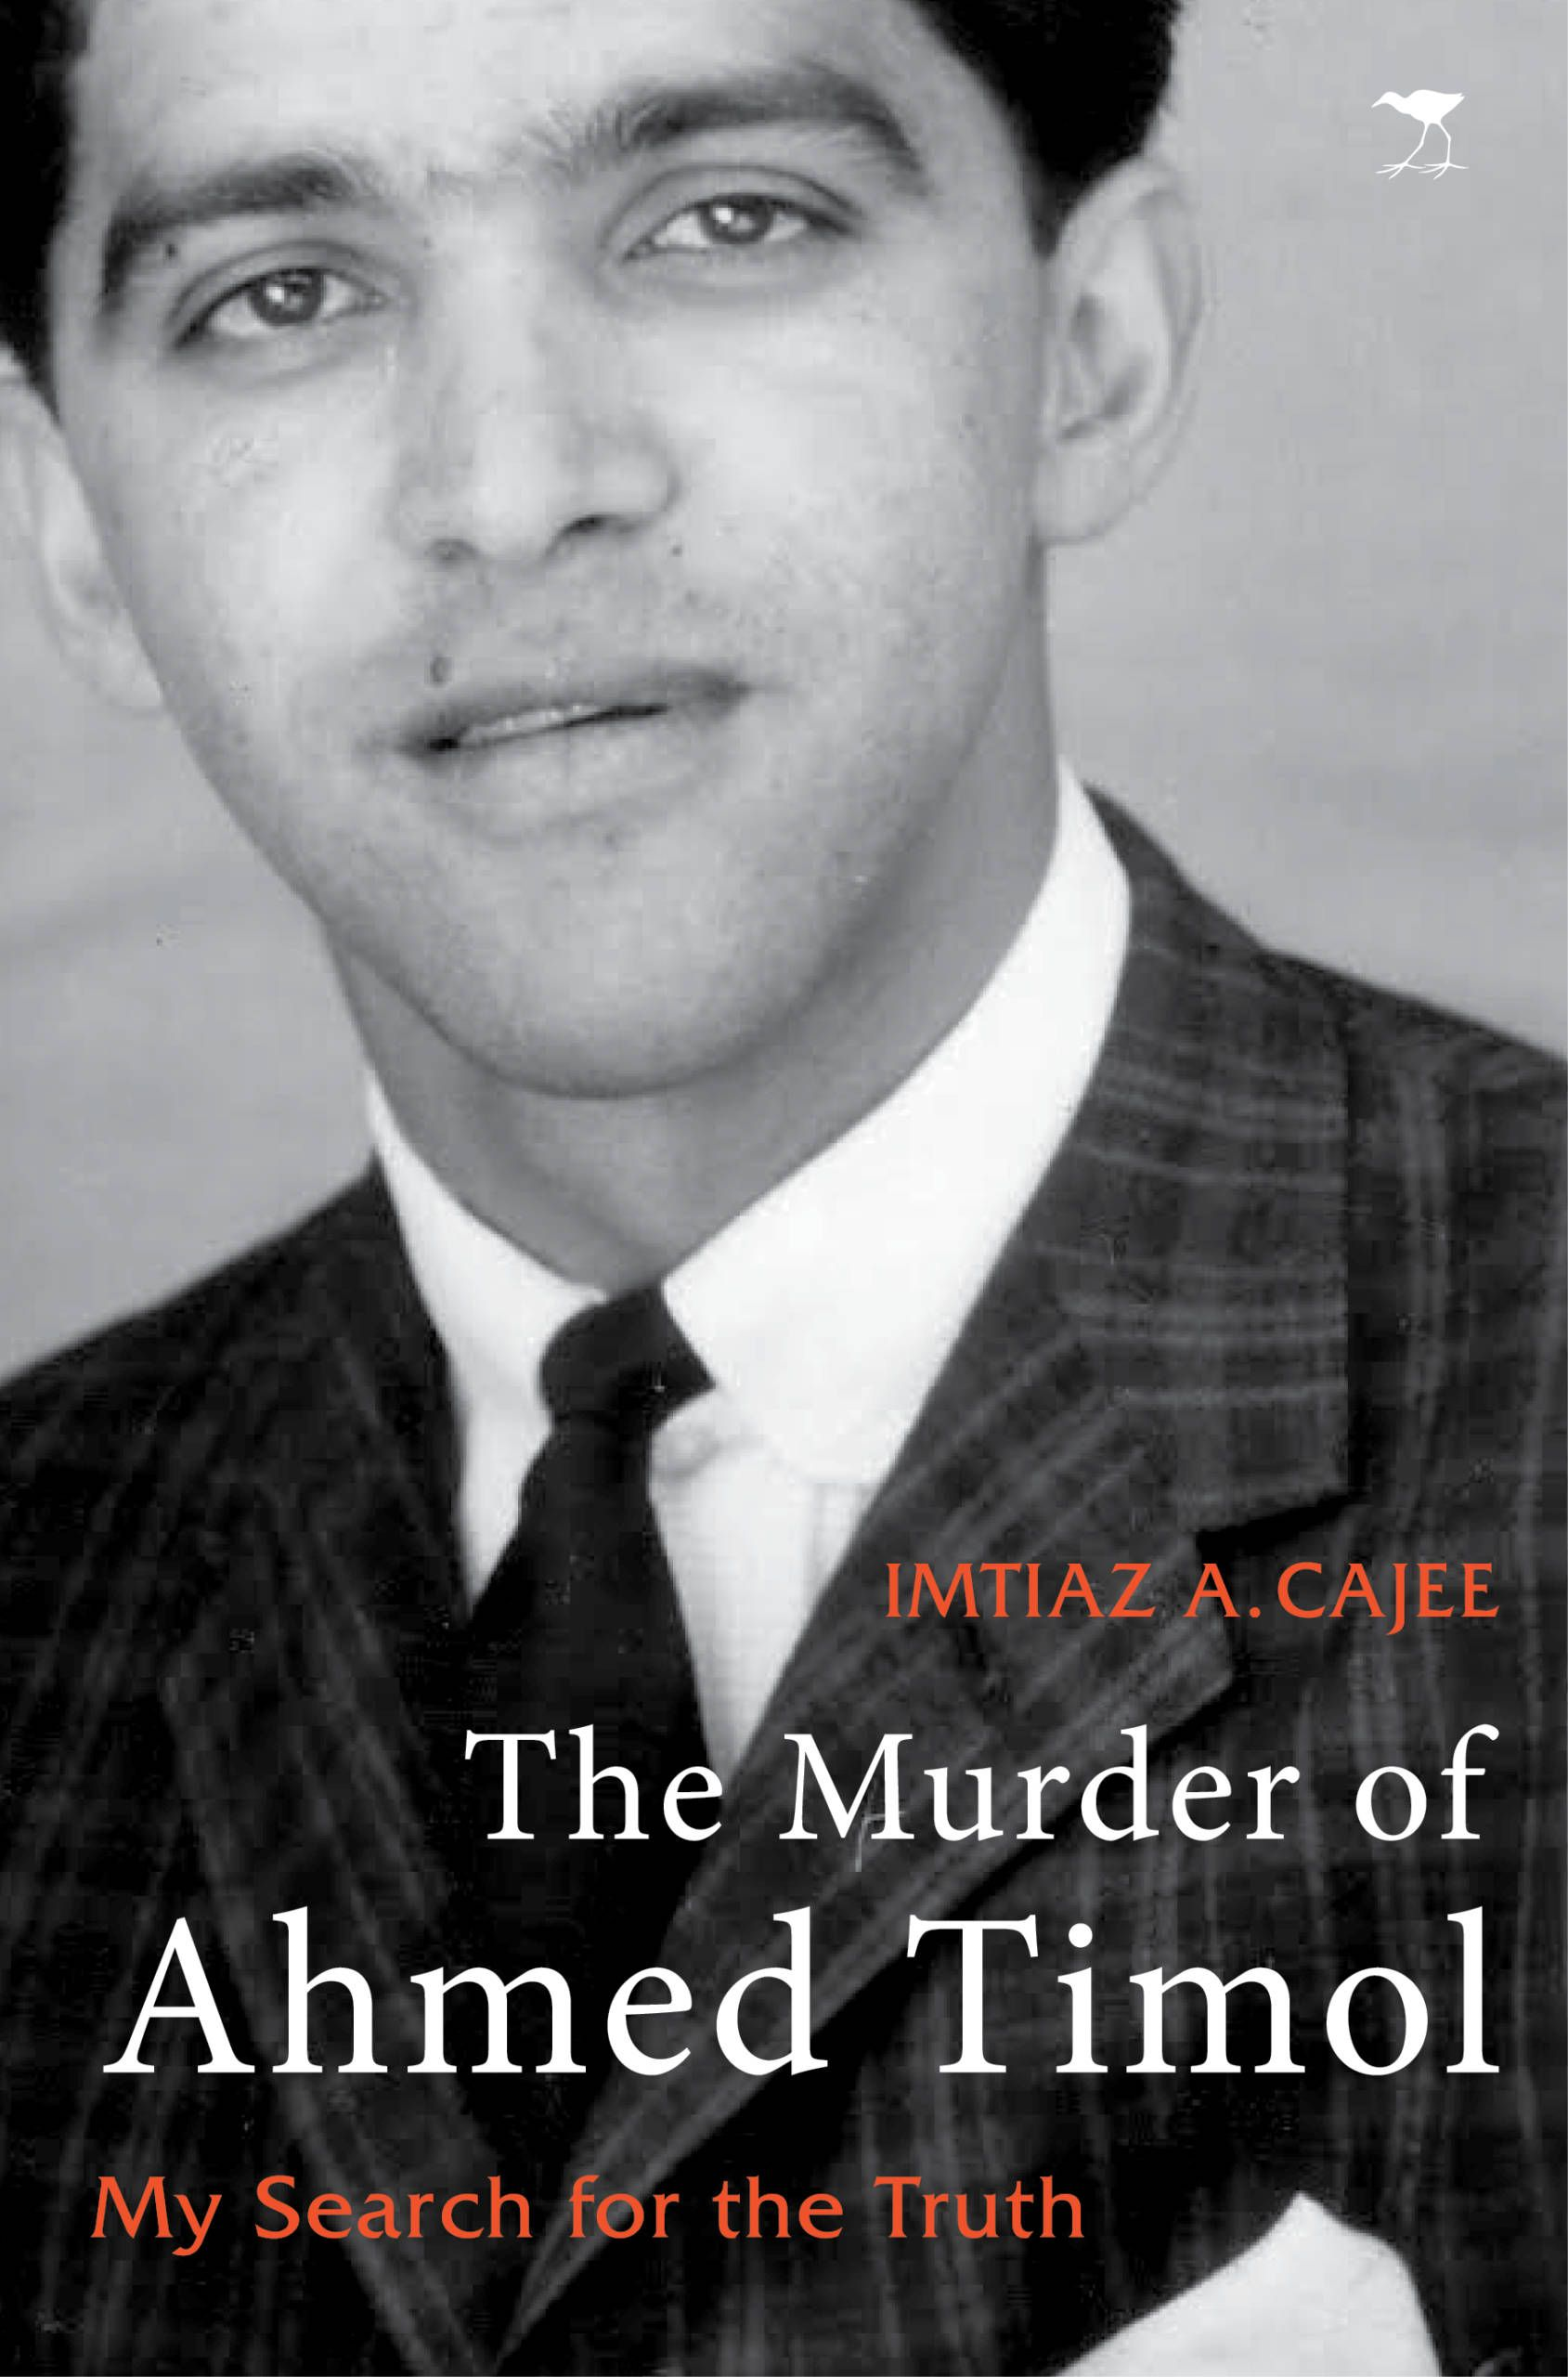 The Murder of Ahmed Timol : My Search for the Truth